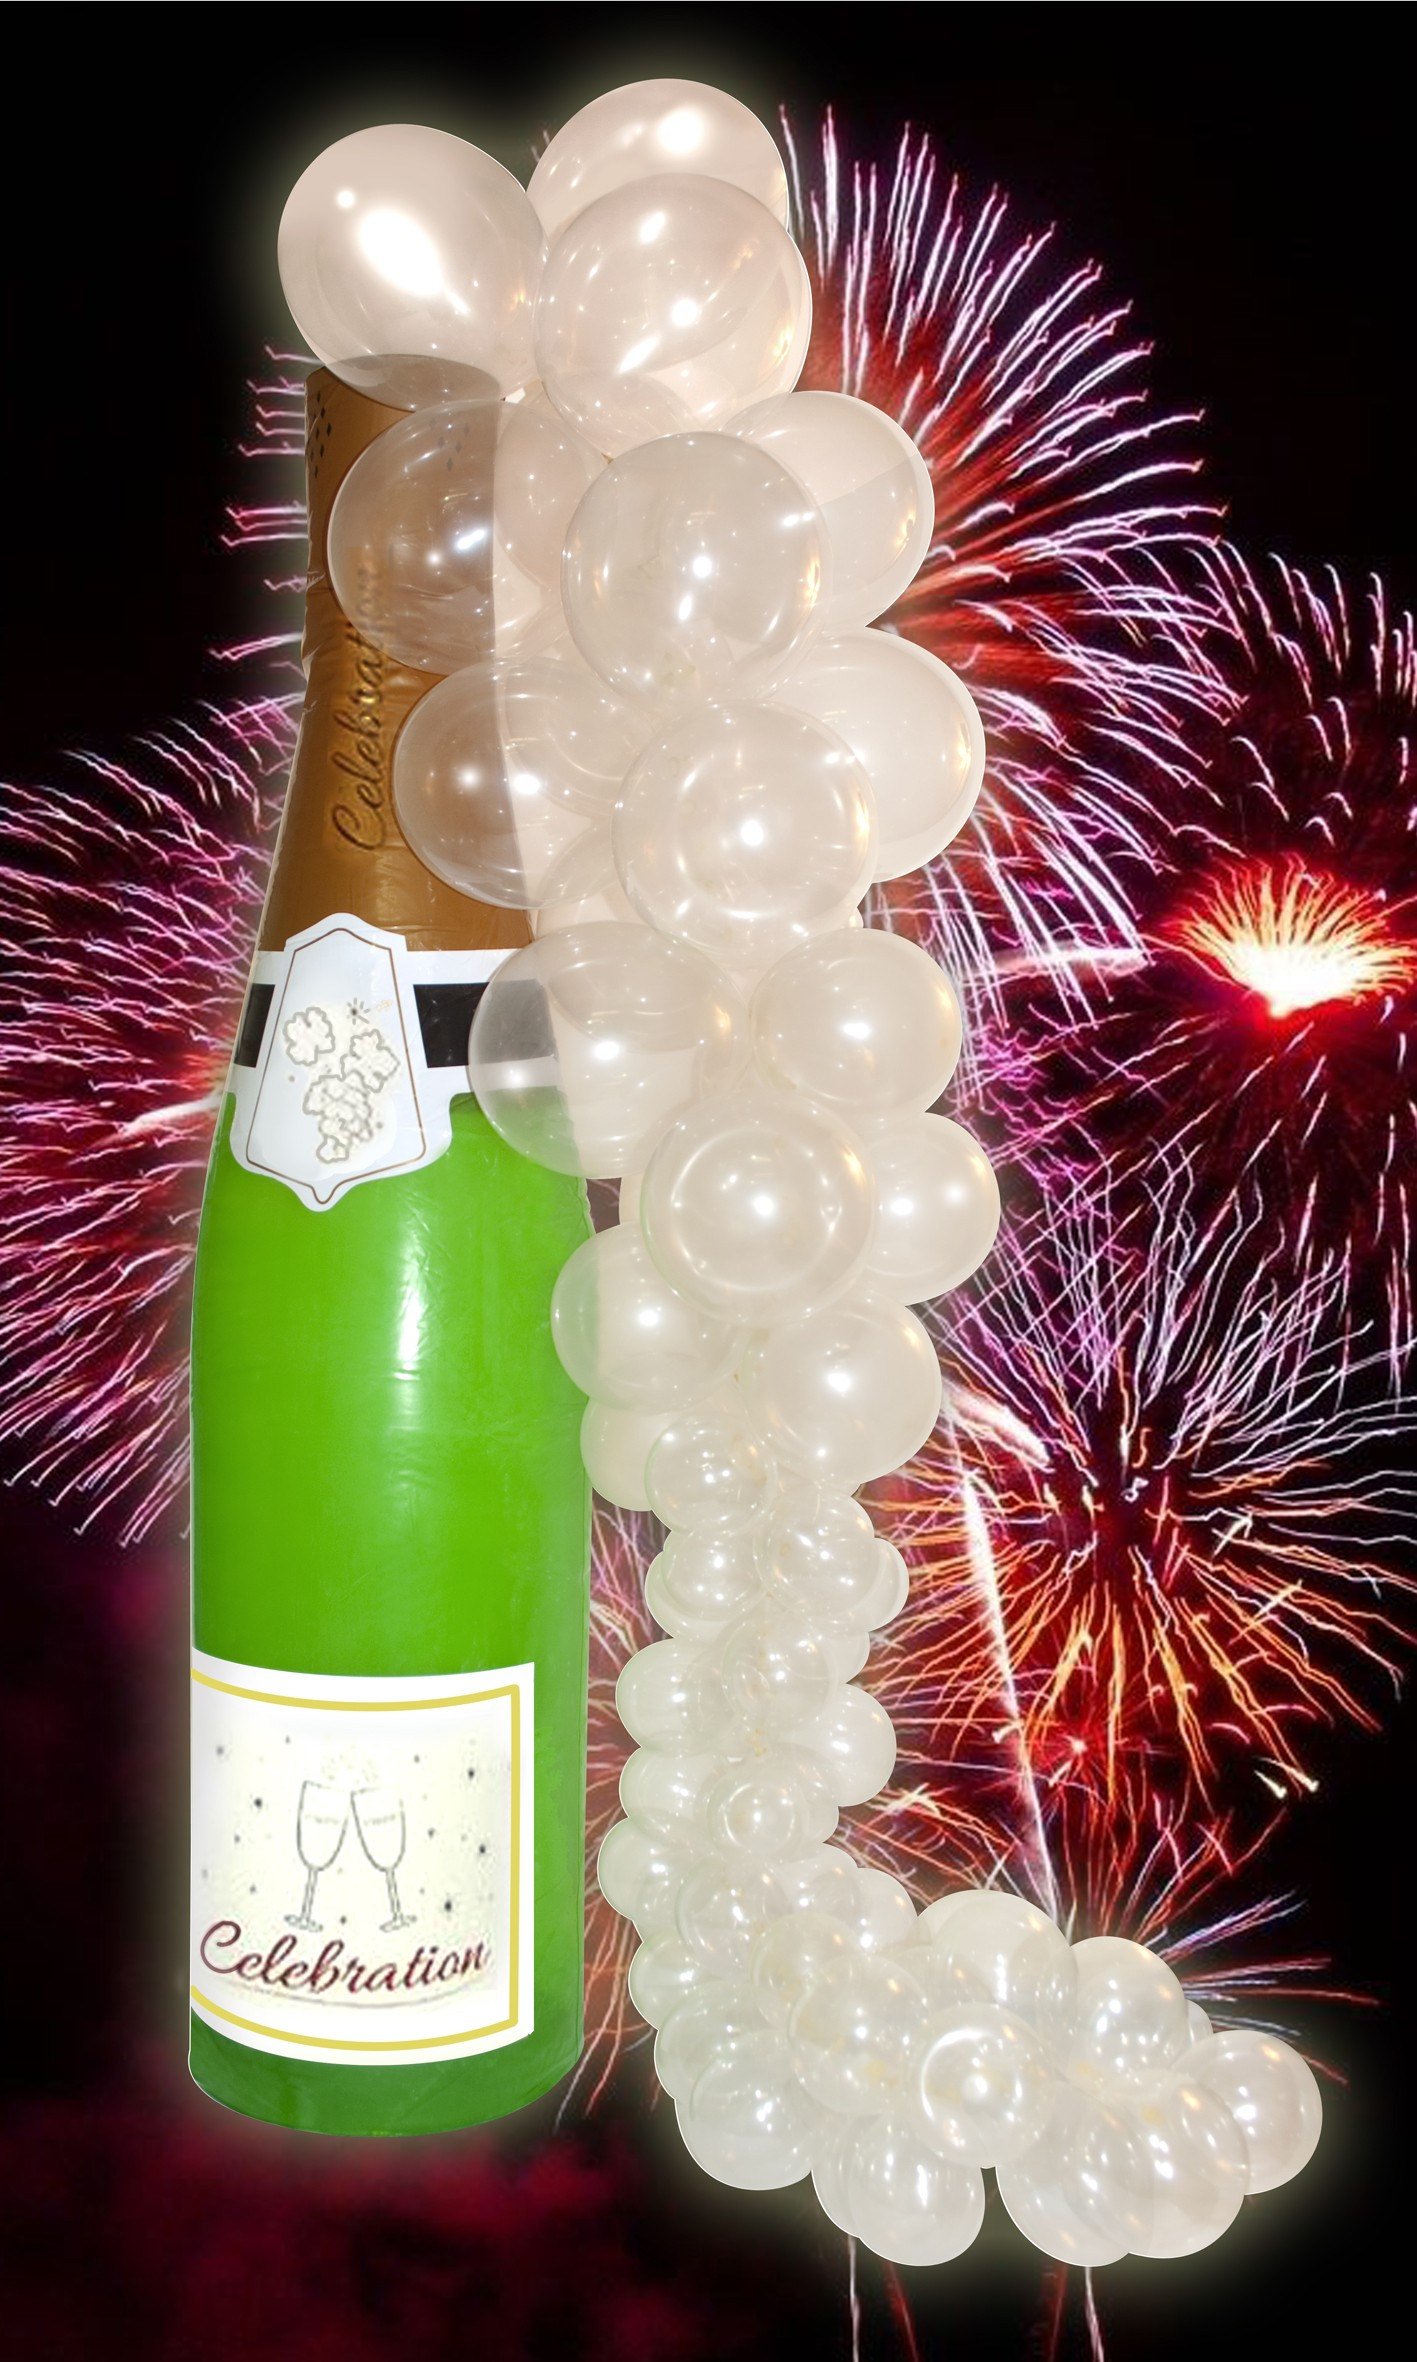 6 Ft Champagne Bottle Inflatable With Bubbles Kit